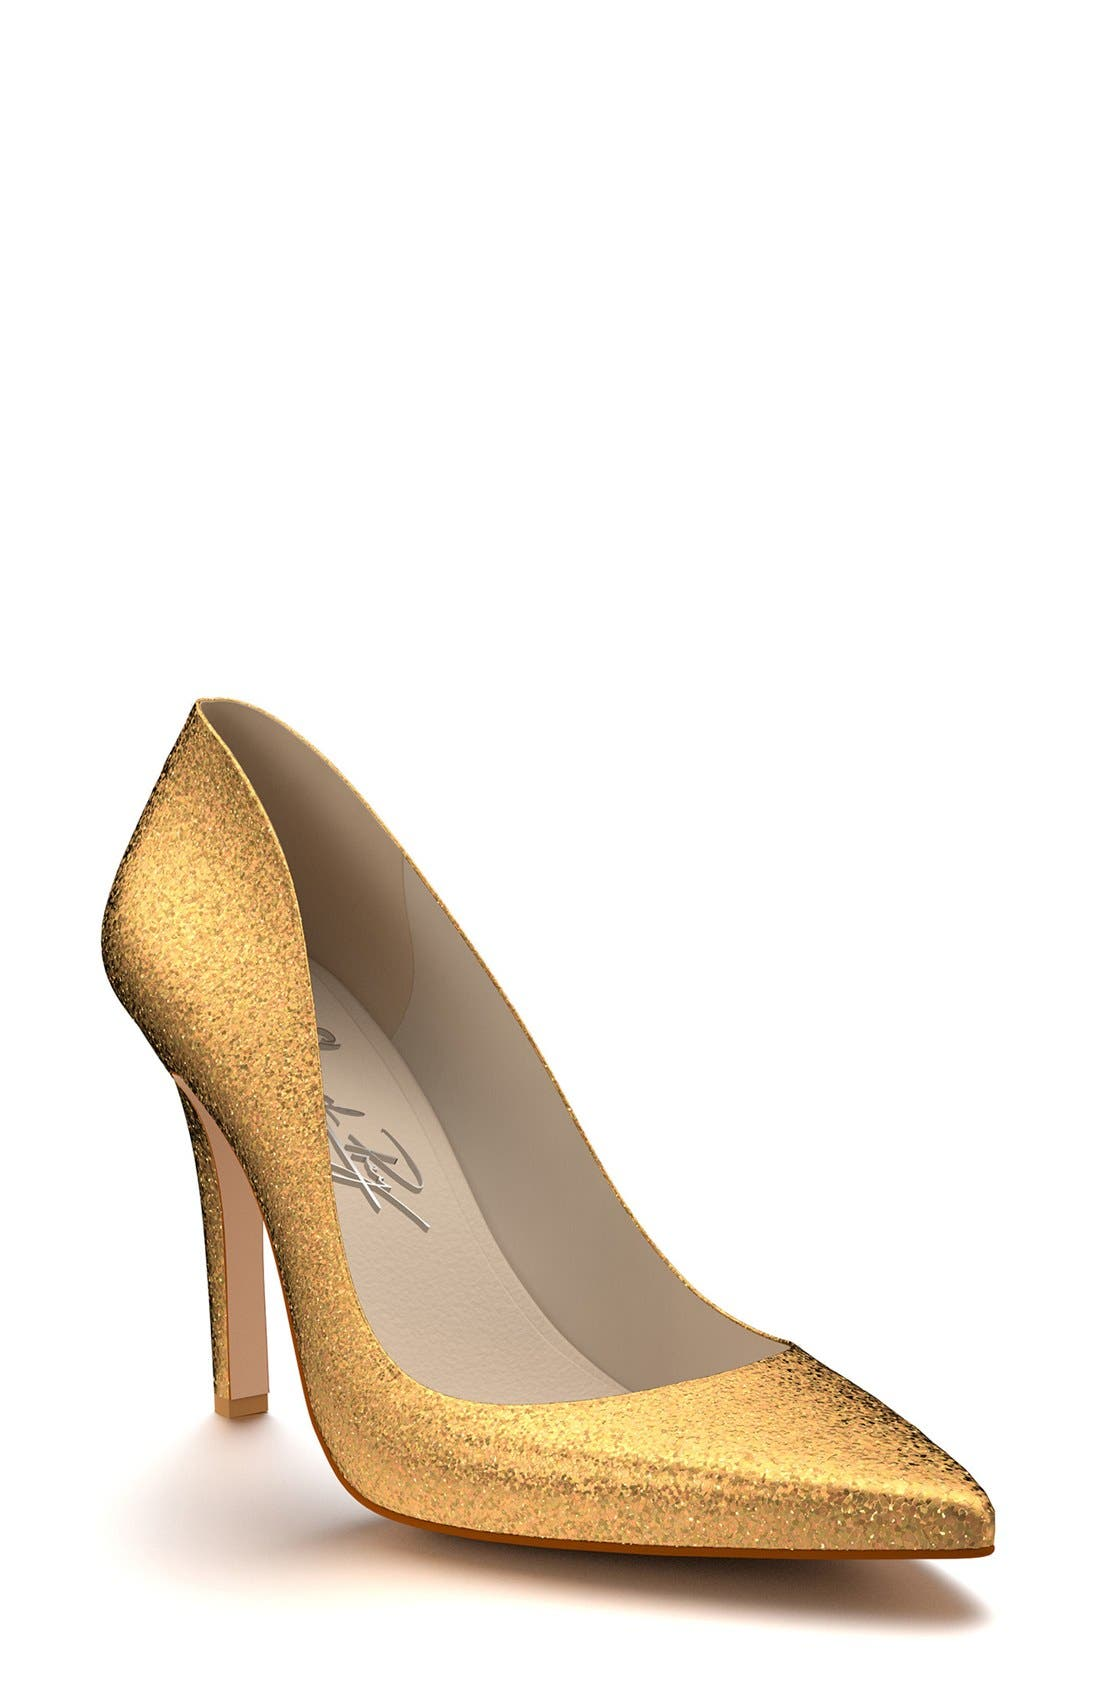 Main Image - Shoes of Prey Pointy Toe Pump (Women) (Nordstrom Exclusive)